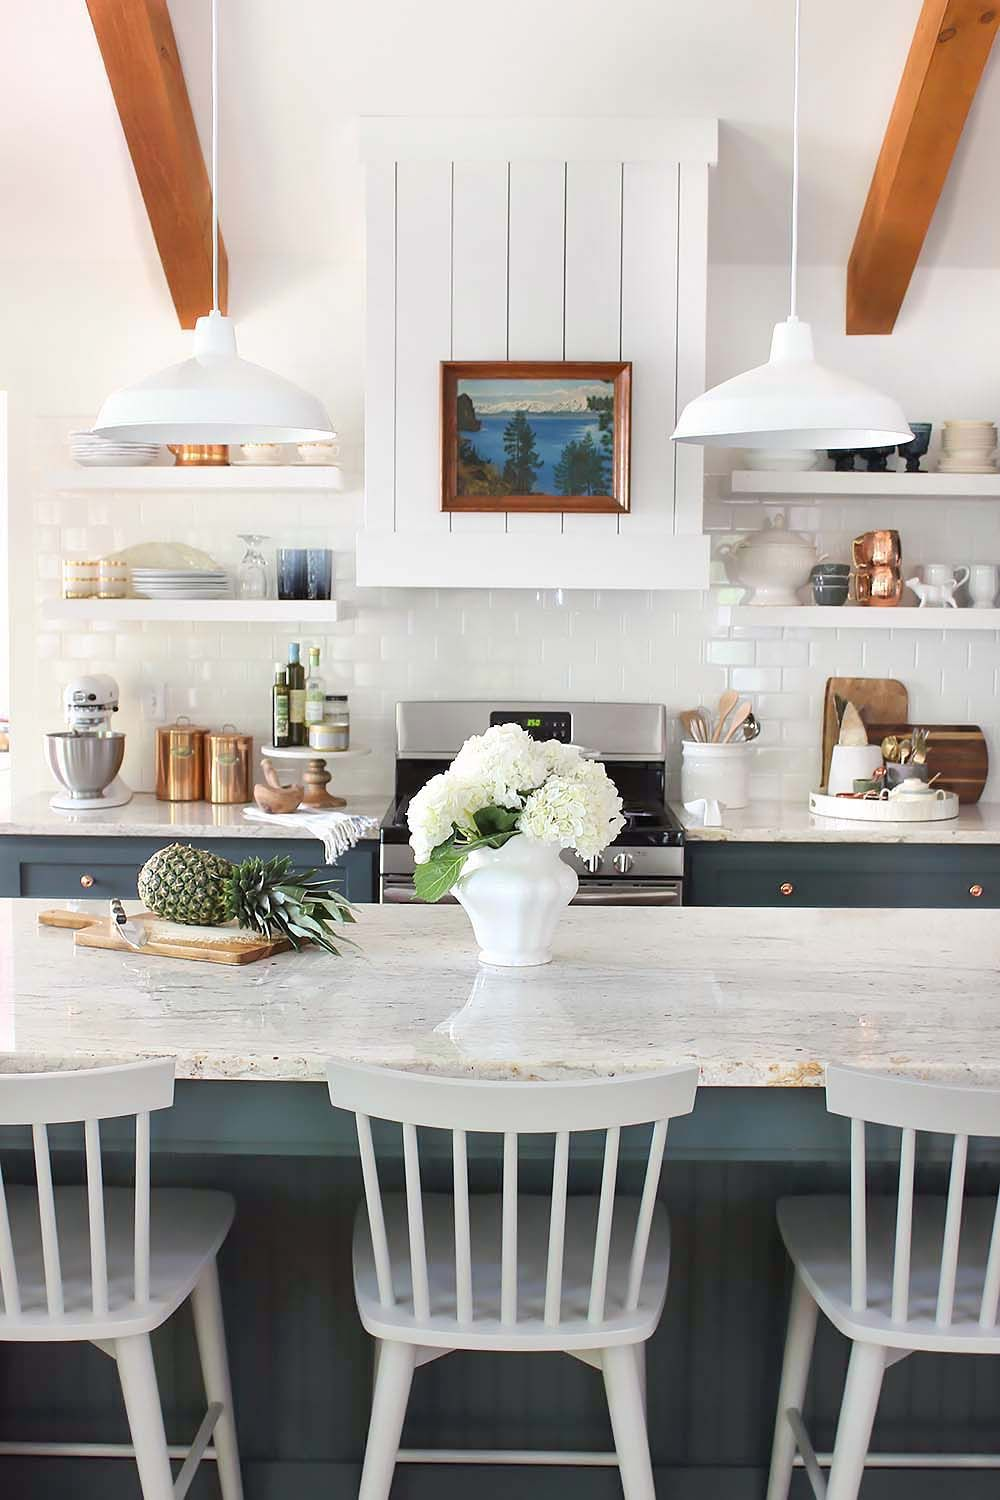 Rustic Kitchen Hingham Menu Finallyour Finished Kitchen Open Shelving Bar Chairs And